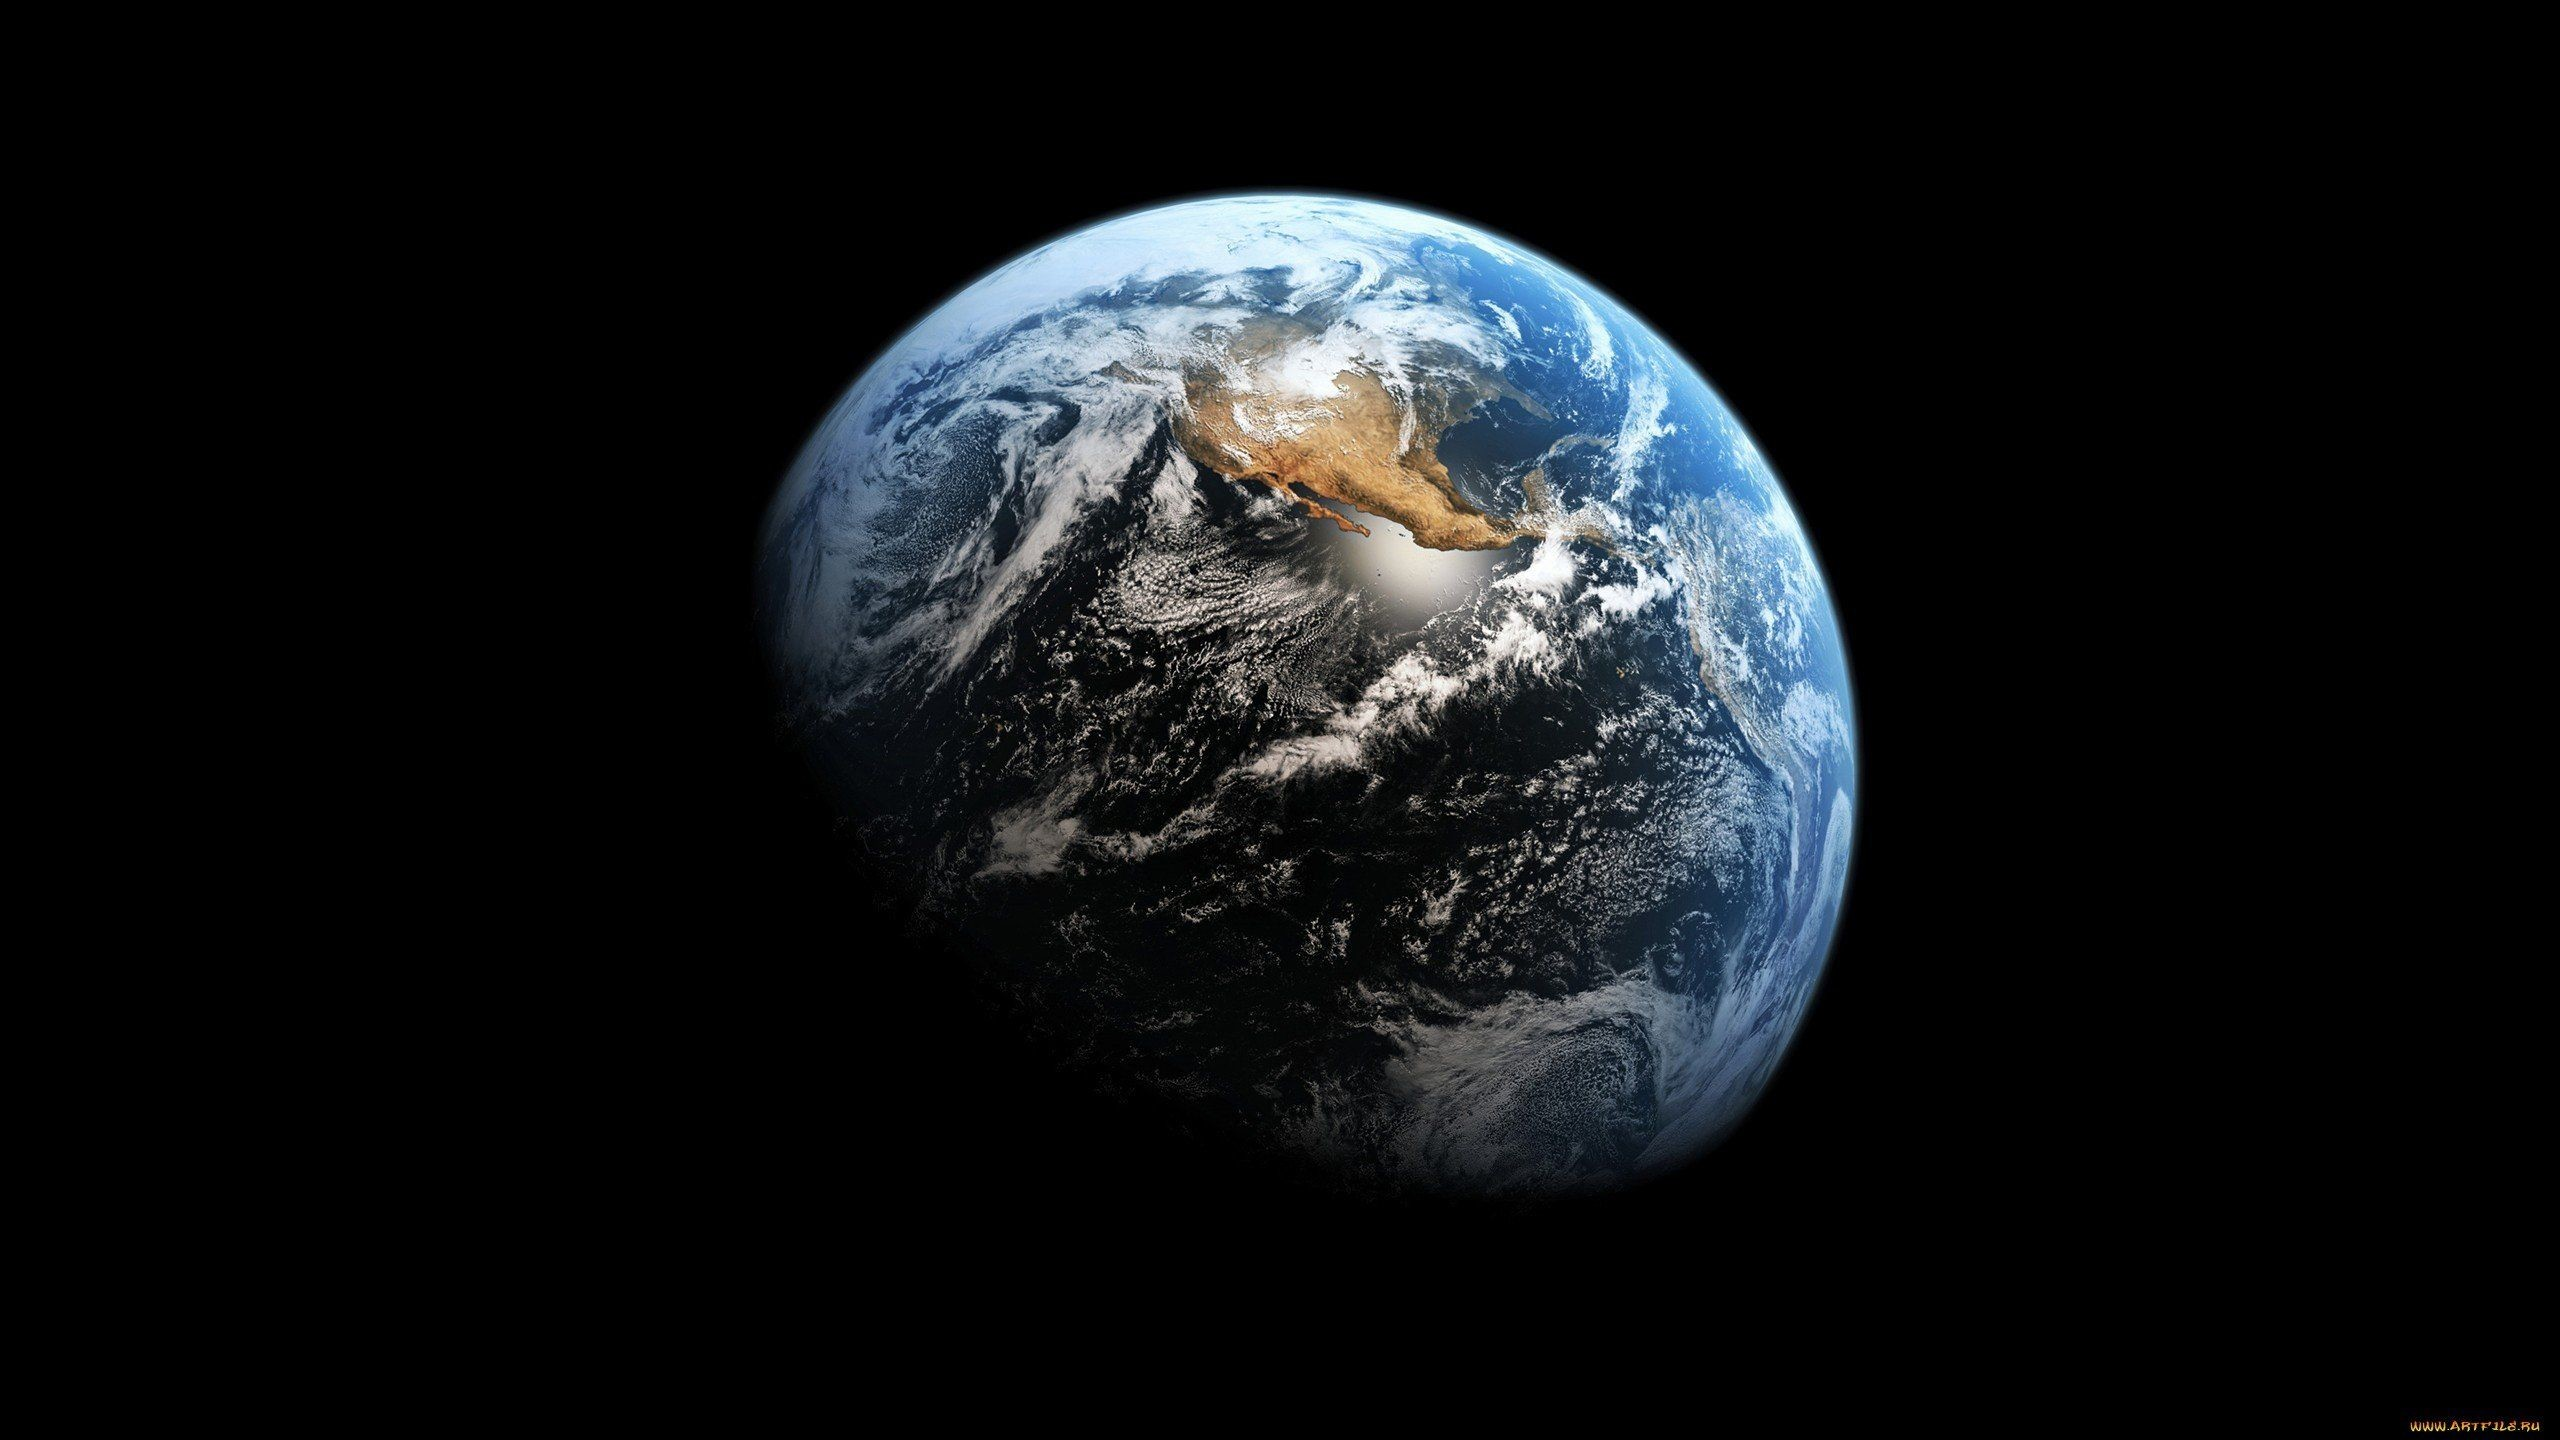 Res: 2560x1440, Earth From Space NASA wallpaper.